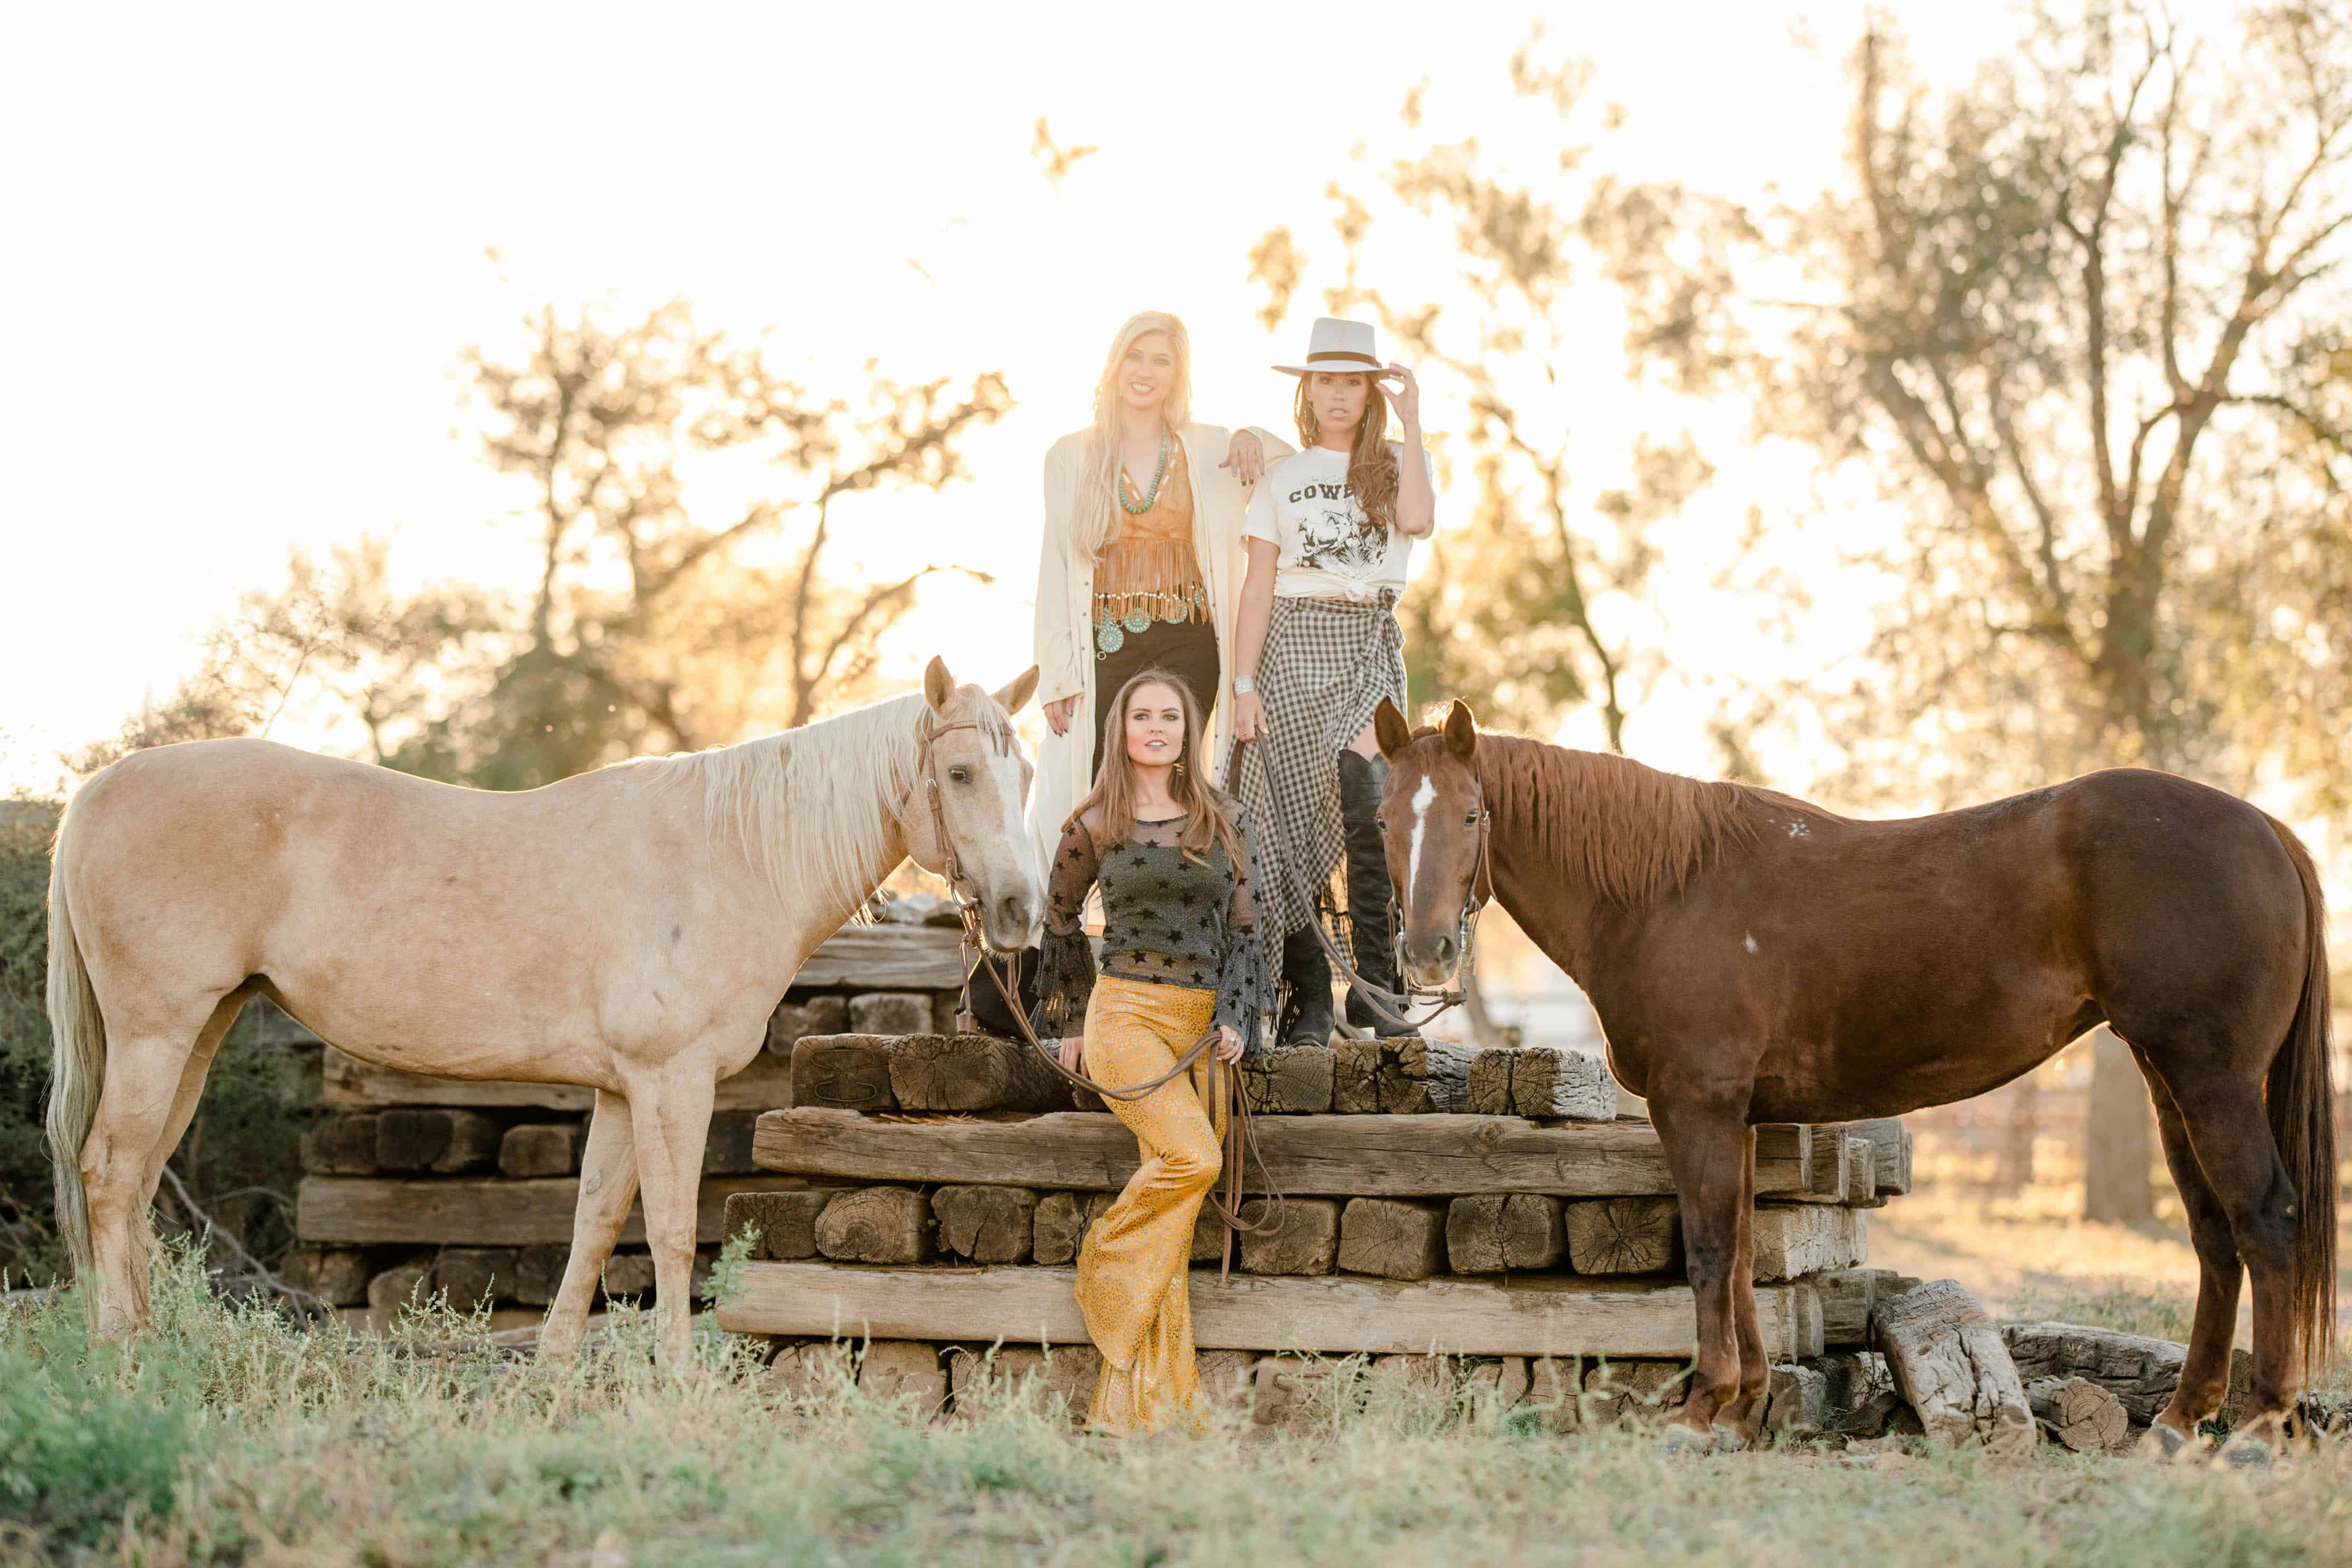 photo by kirstie marie of women and horses